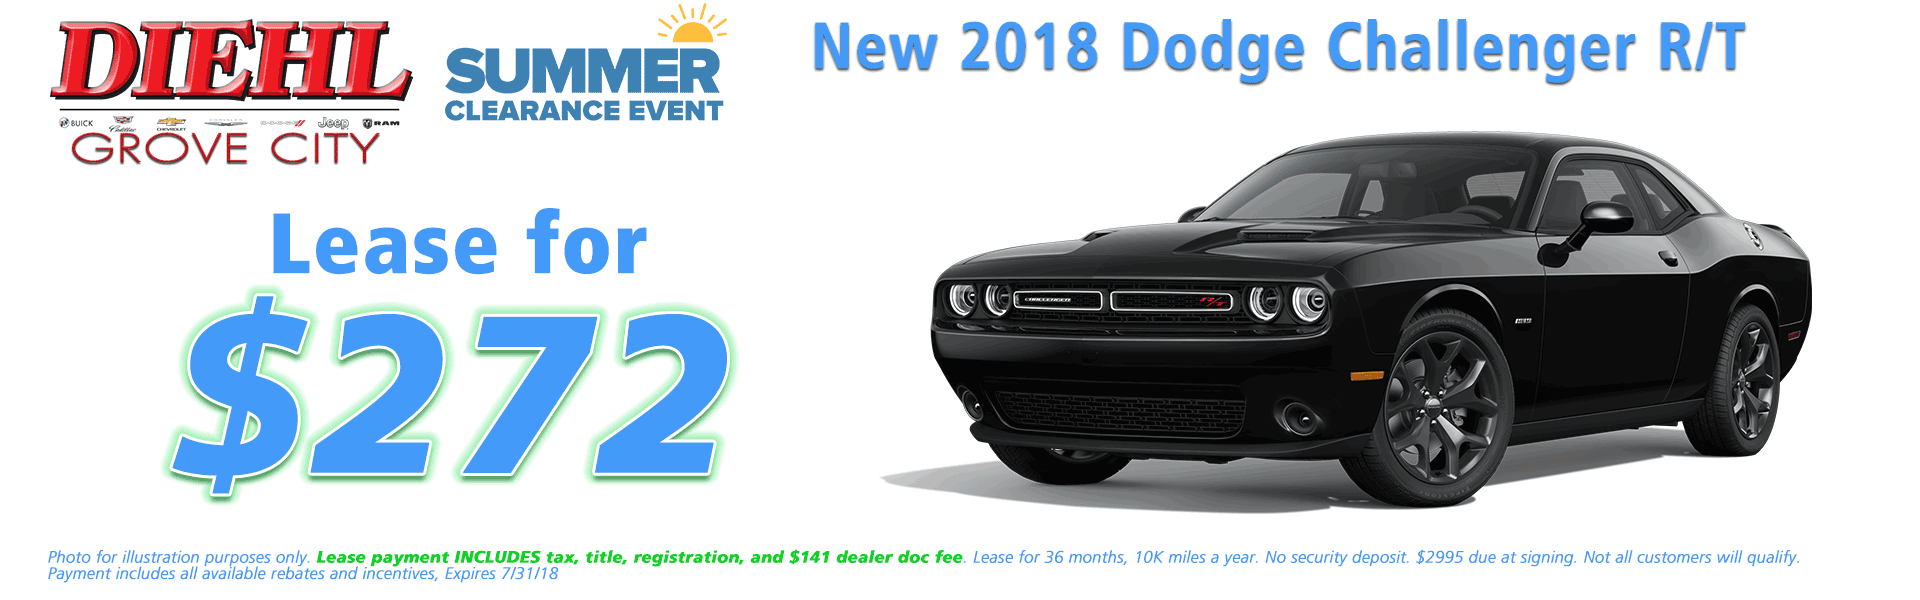 Diehl of Grove City, Grove City, PA 16127 Chrysler Jeep Dodge Ram Chevrolet Buick Cadillac NEW 2018 DODGE CHALLENGER R/T